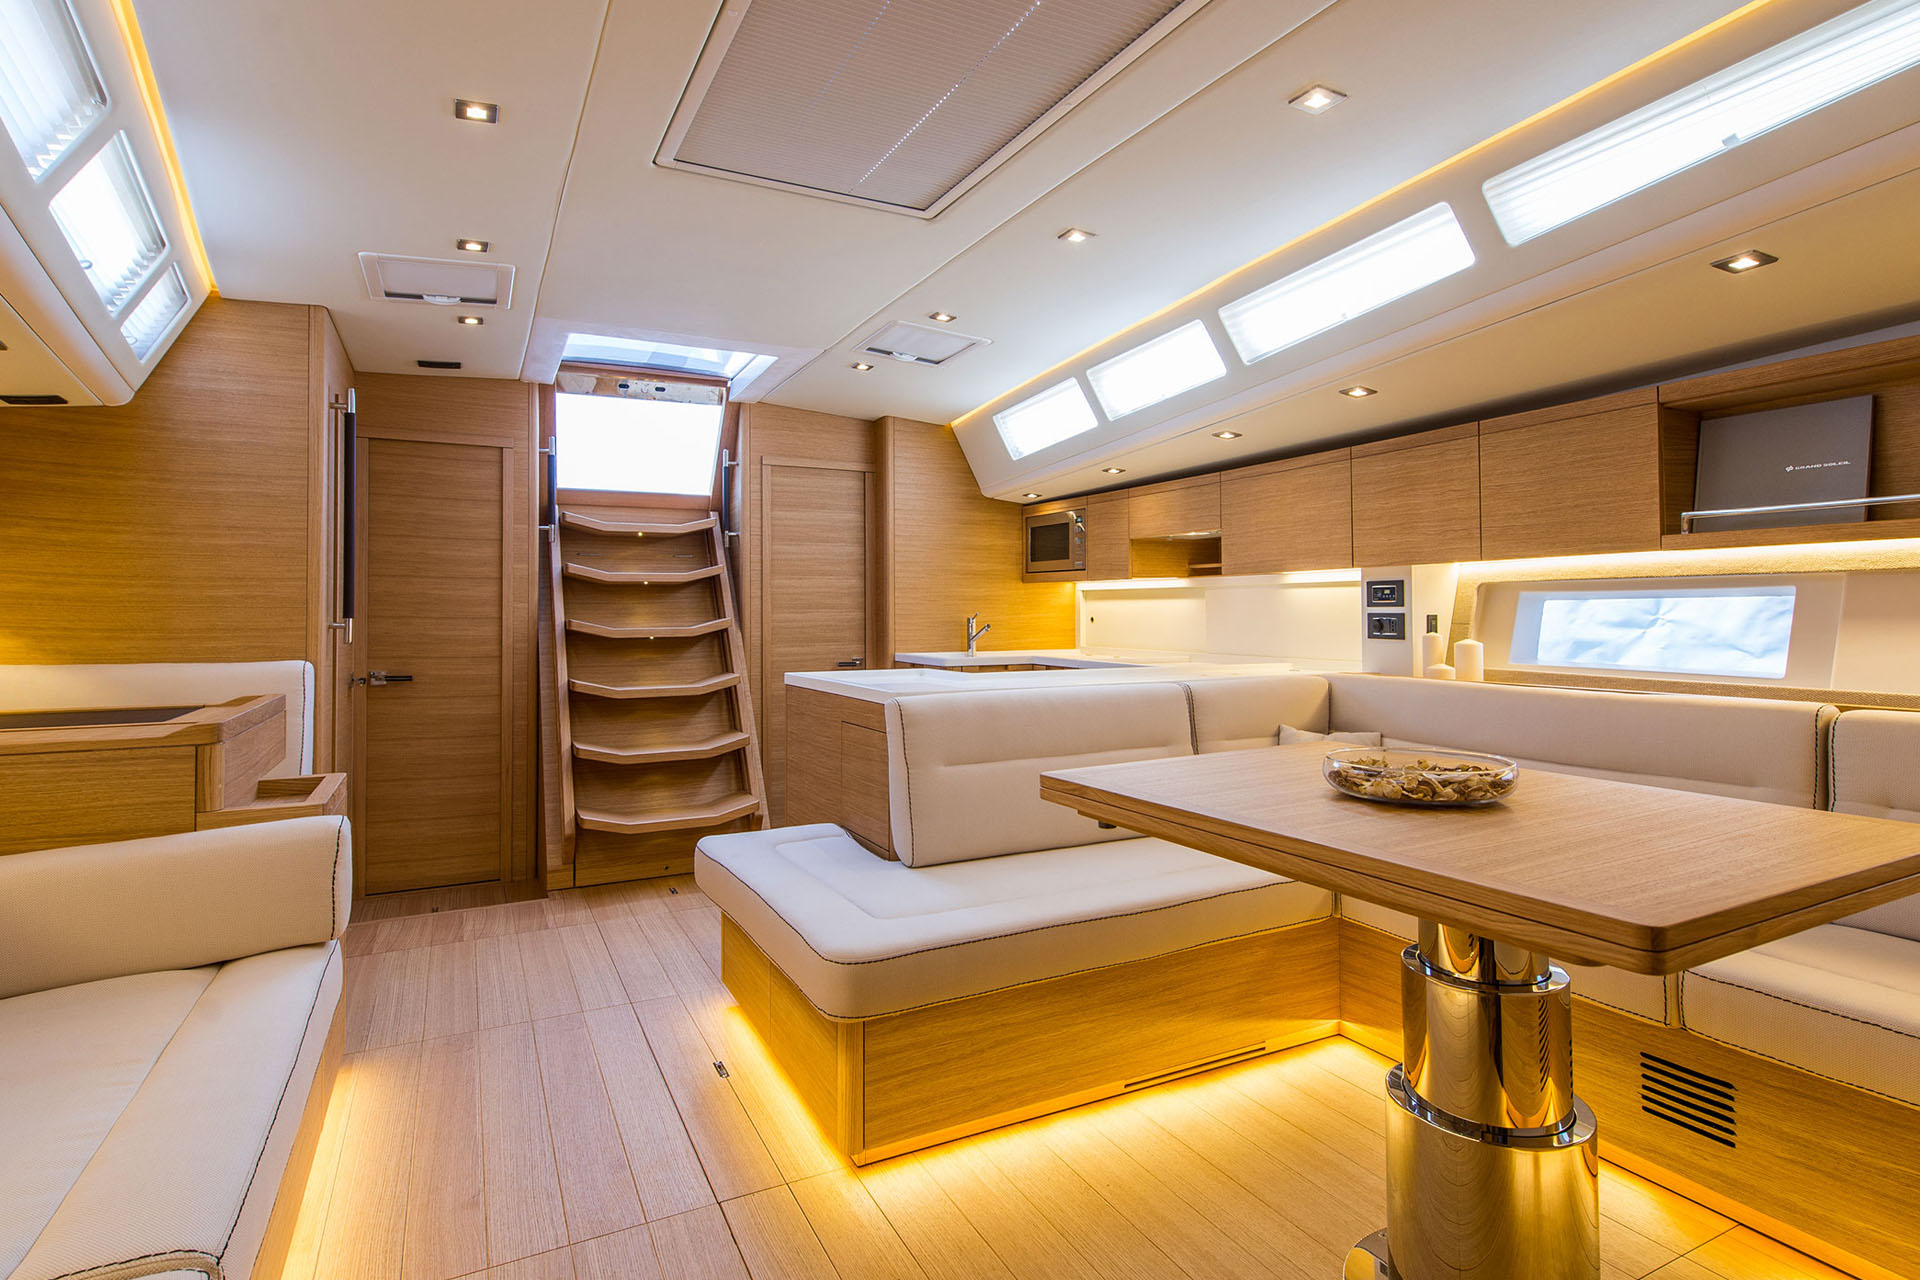 Grand_Soleil_58-Interior-1-California_Yacht_Imports